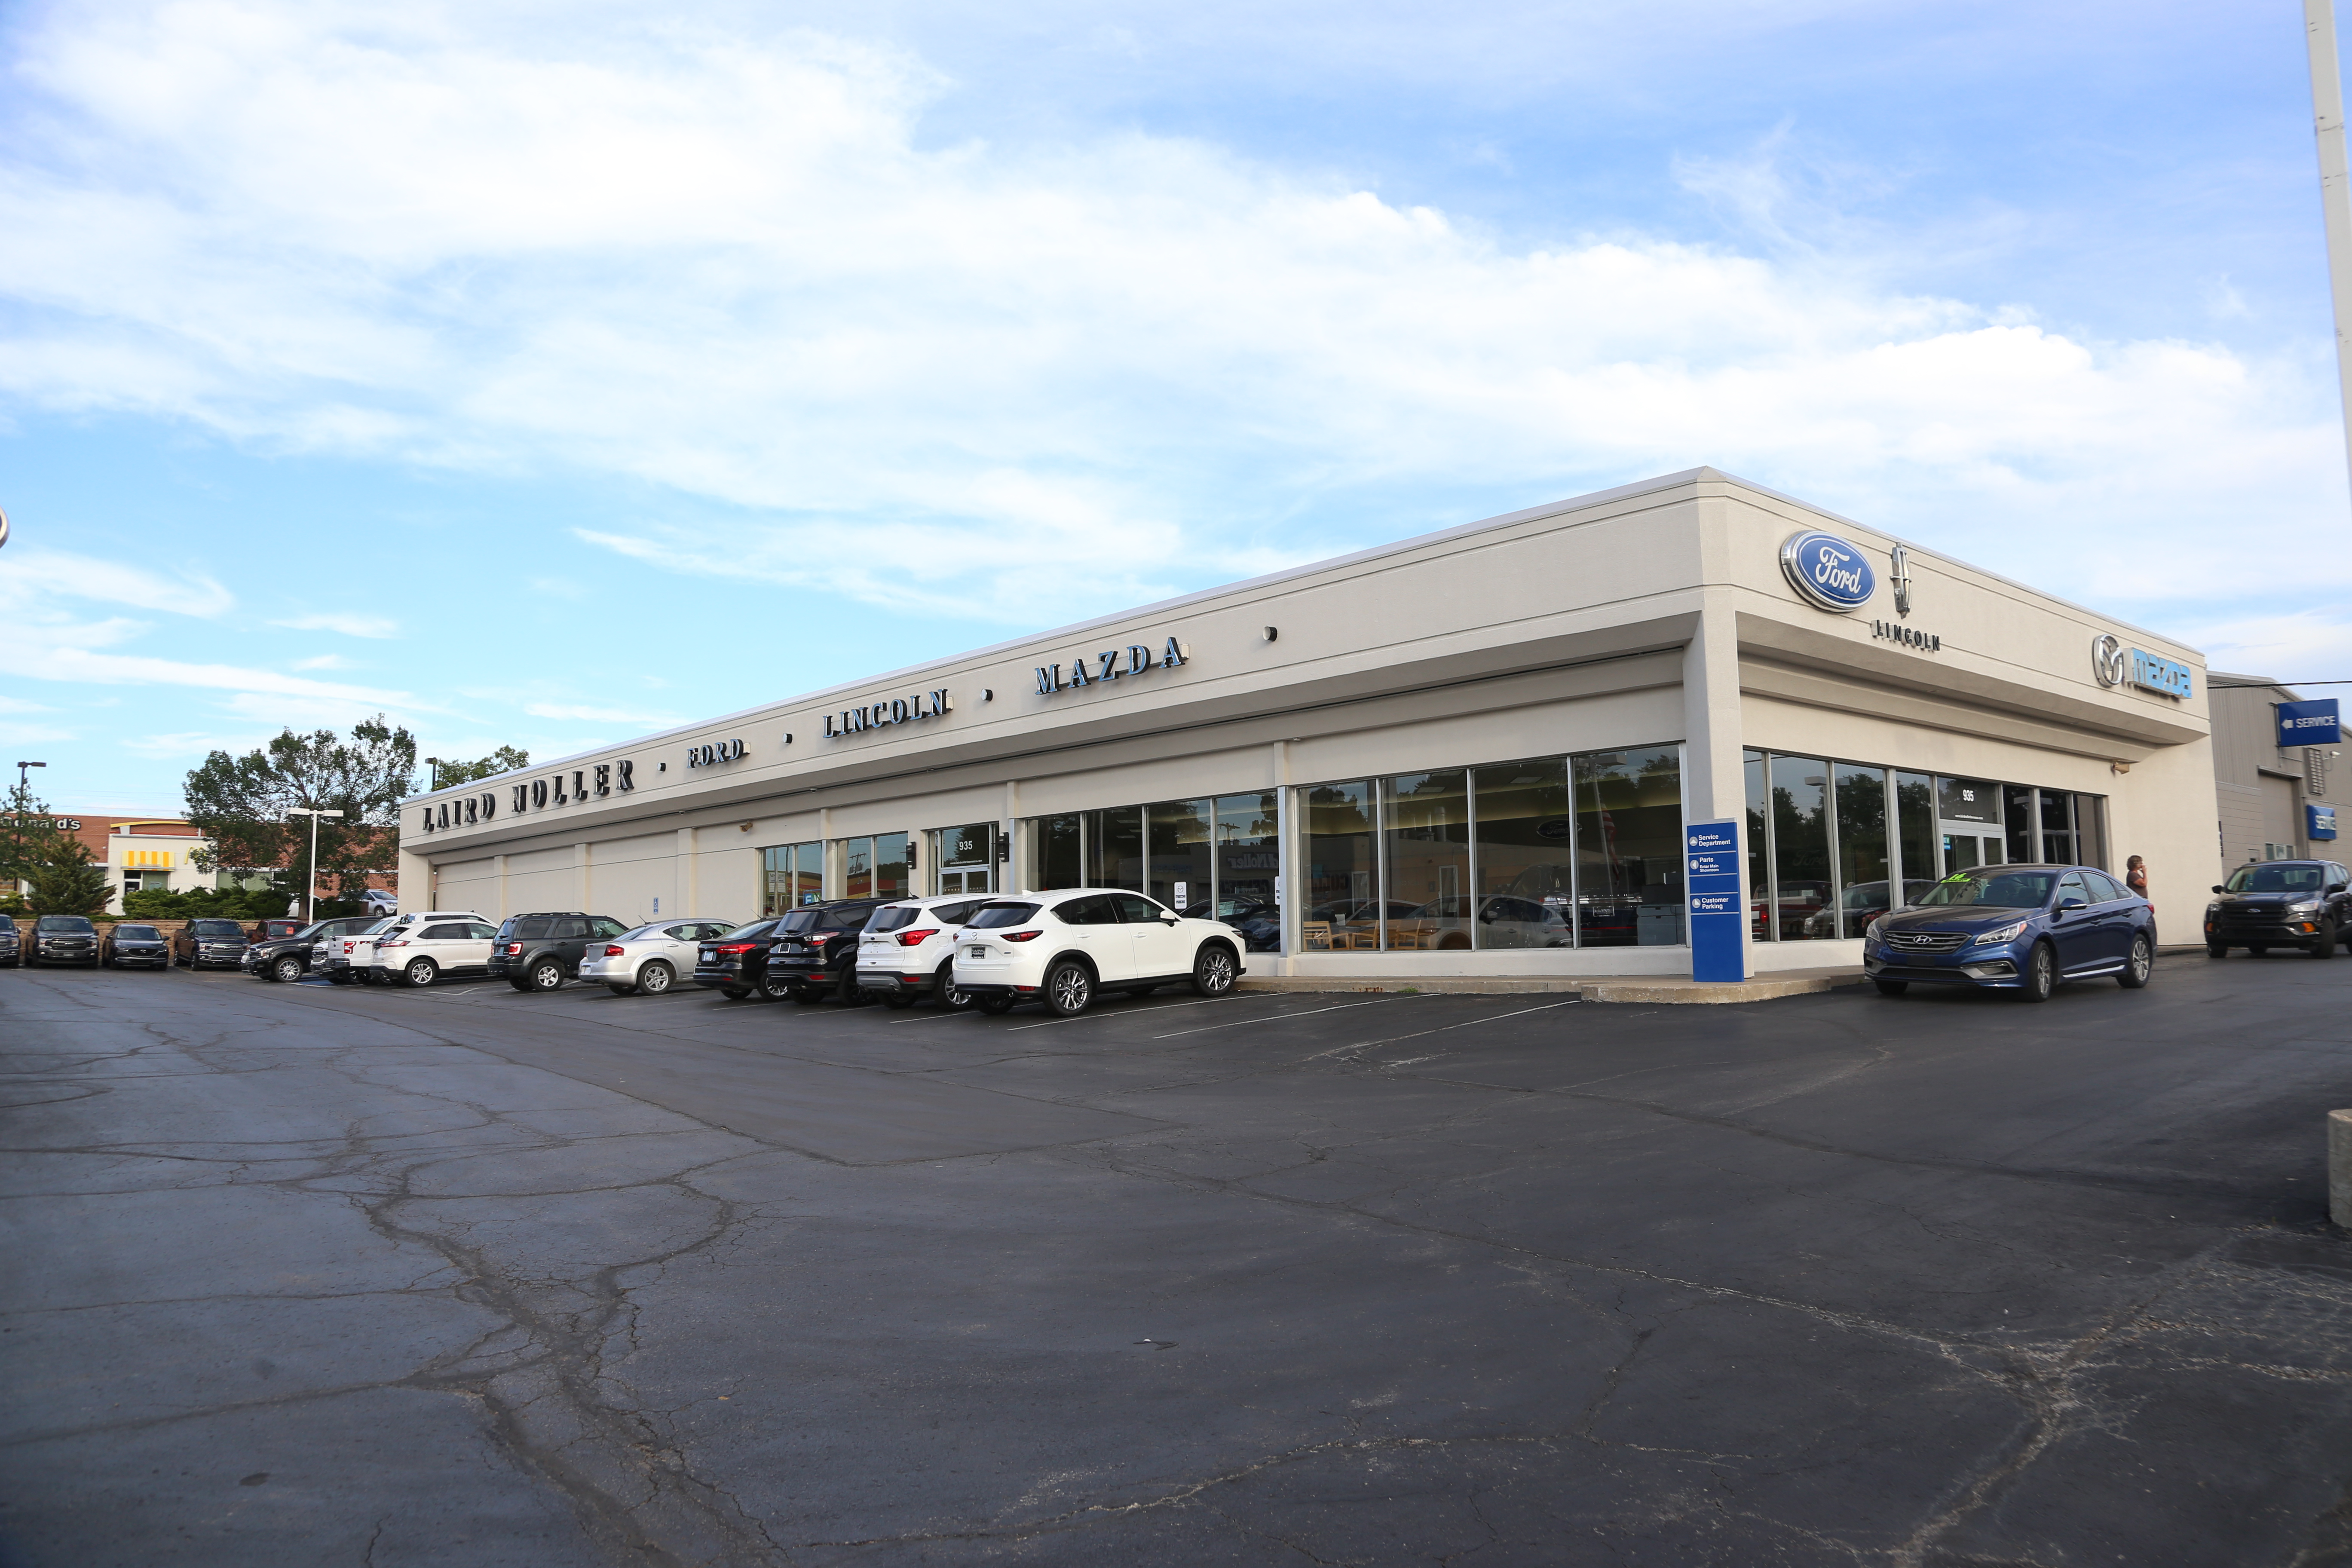 Peachy Town Talk Auto Dealer To Build New Showroom On 23Rd Street Download Free Architecture Designs Scobabritishbridgeorg